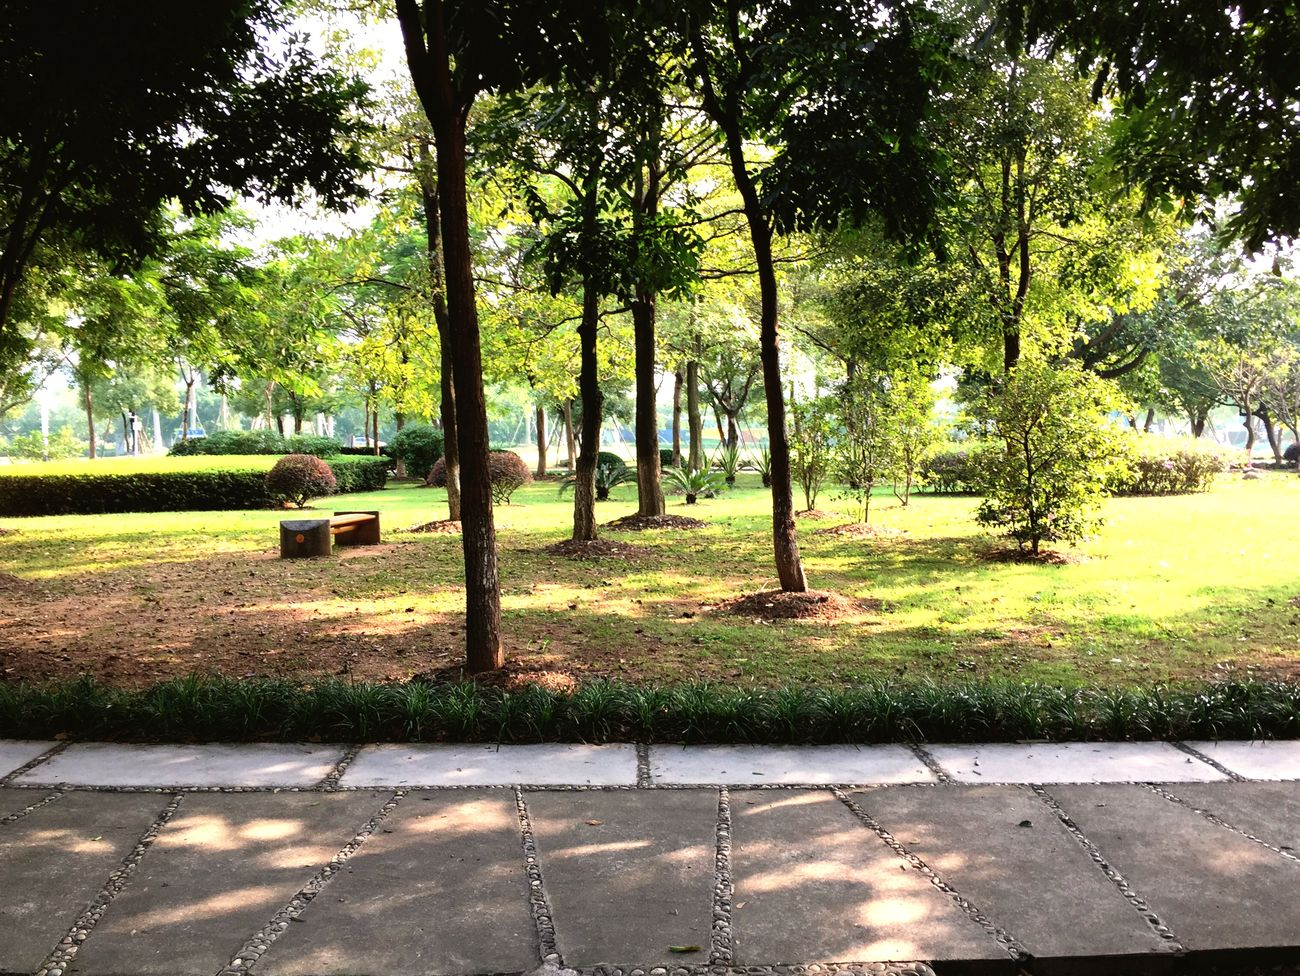 Taking Photos Light And Shadow Enjoying The Sun My College Getting Inspired 每次经过都能感到心灵的宁静🍃